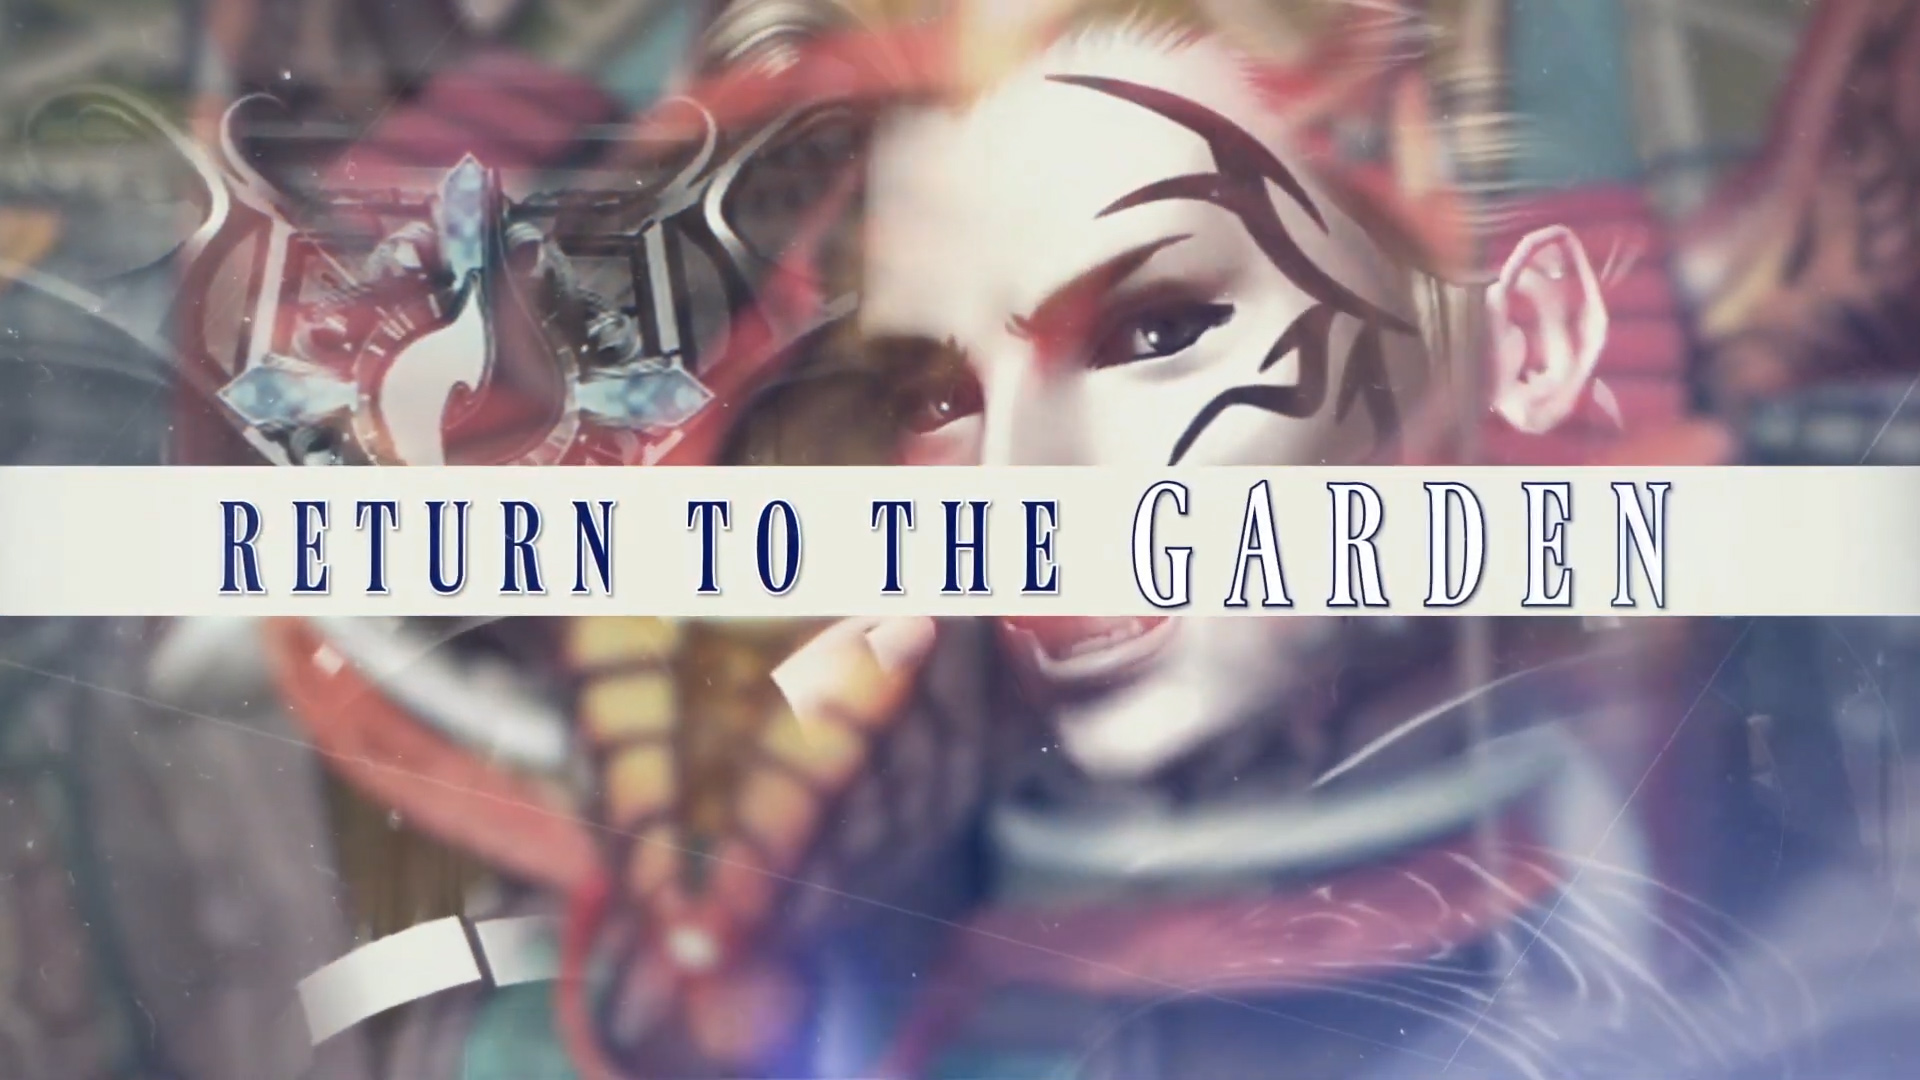 Final Fantasy VIII Remastered graphic with smiling teenager with attitude and Return to the Garden text.